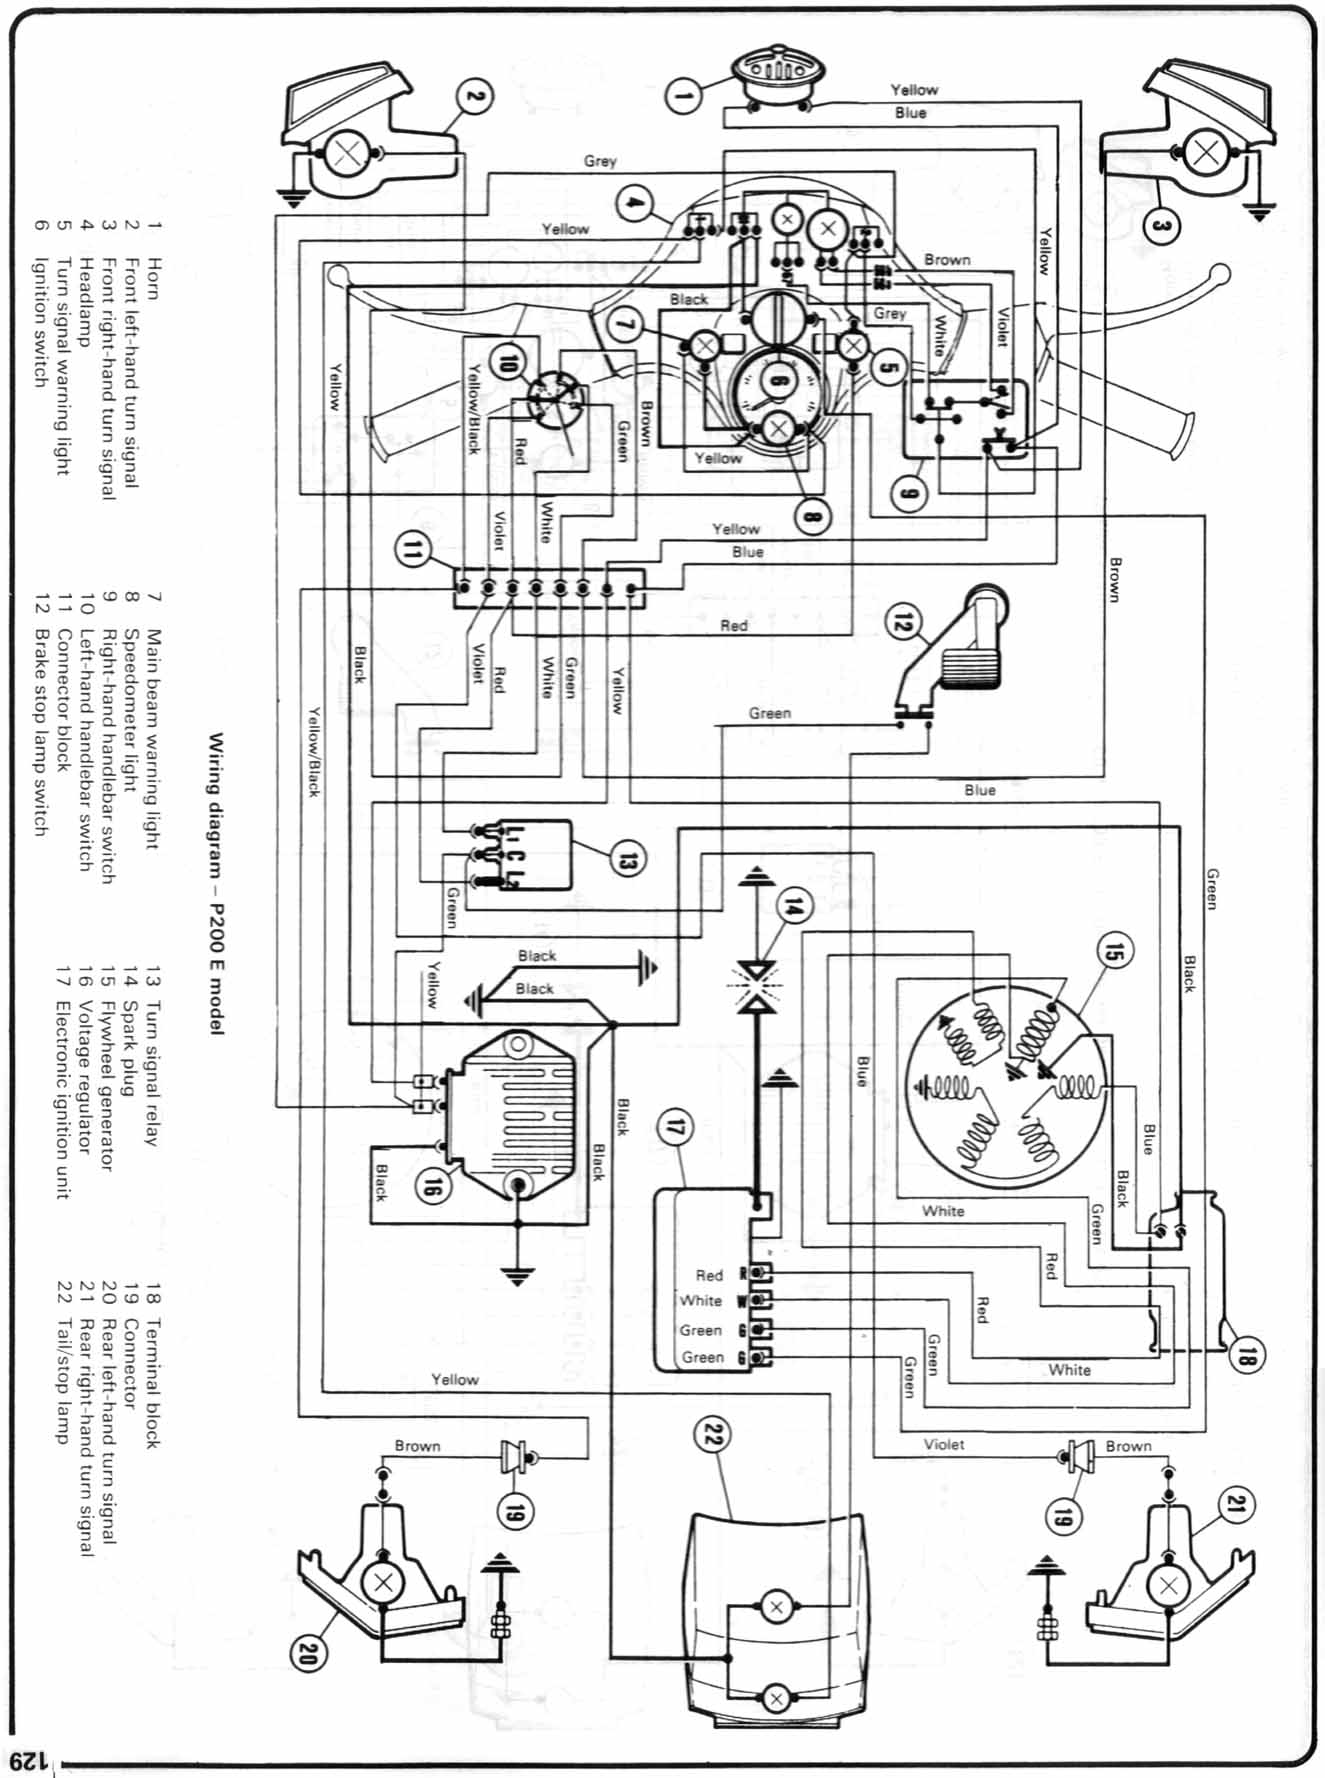 p200diag1 modern vespa seeking advice on an overly ambitious electrical vespa p125x wiring diagram at virtualis.co